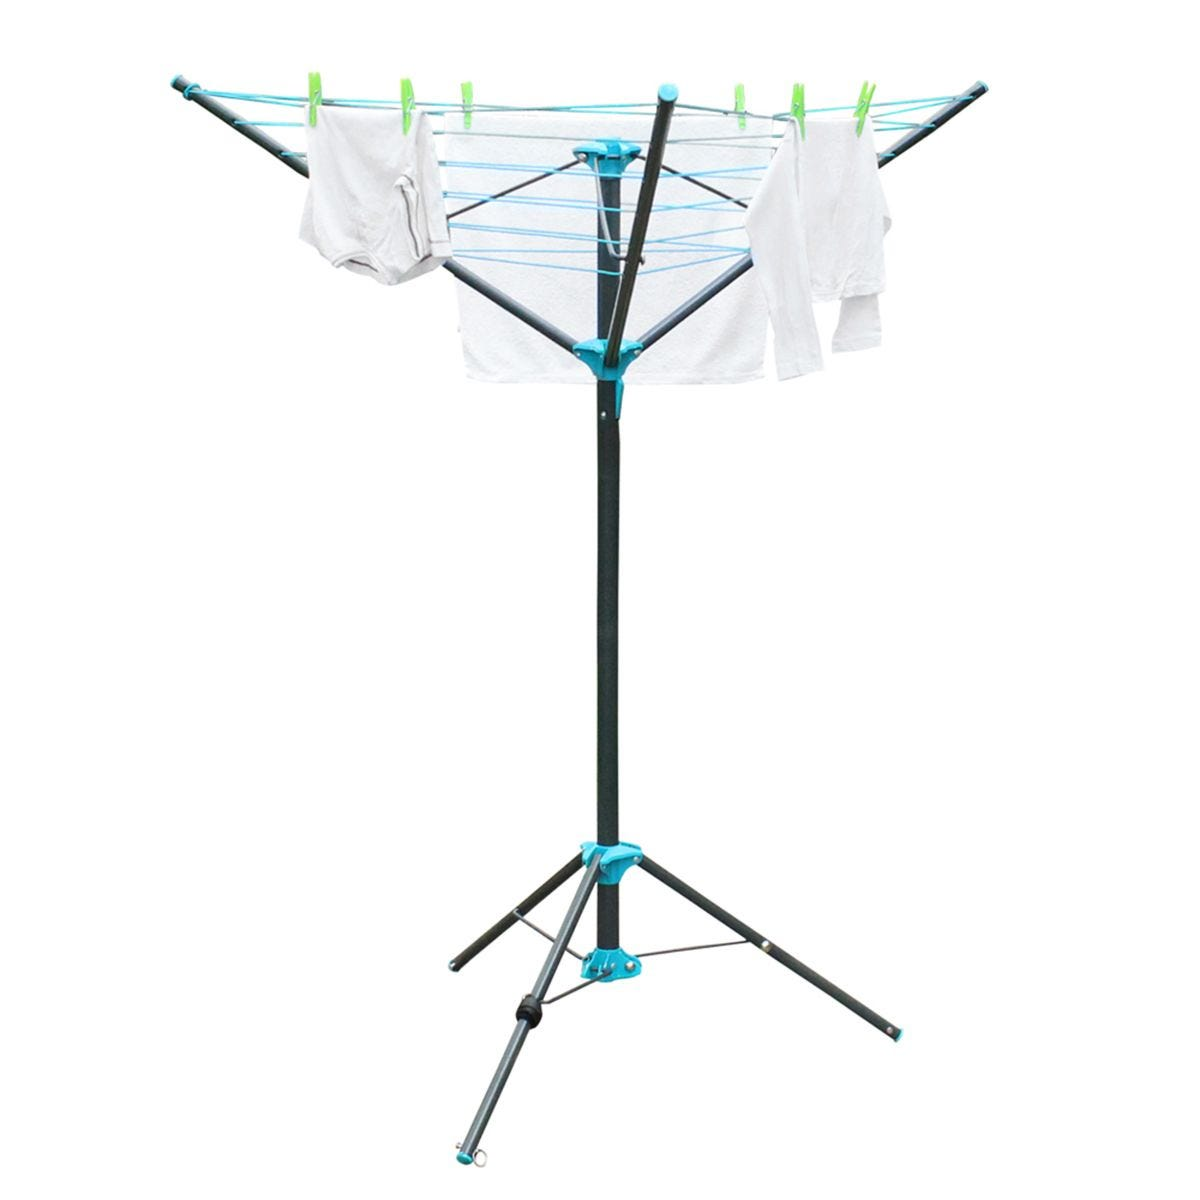 JVL Compact Portable 3 Arm Free Standing Rotary Clothes Airer 16m